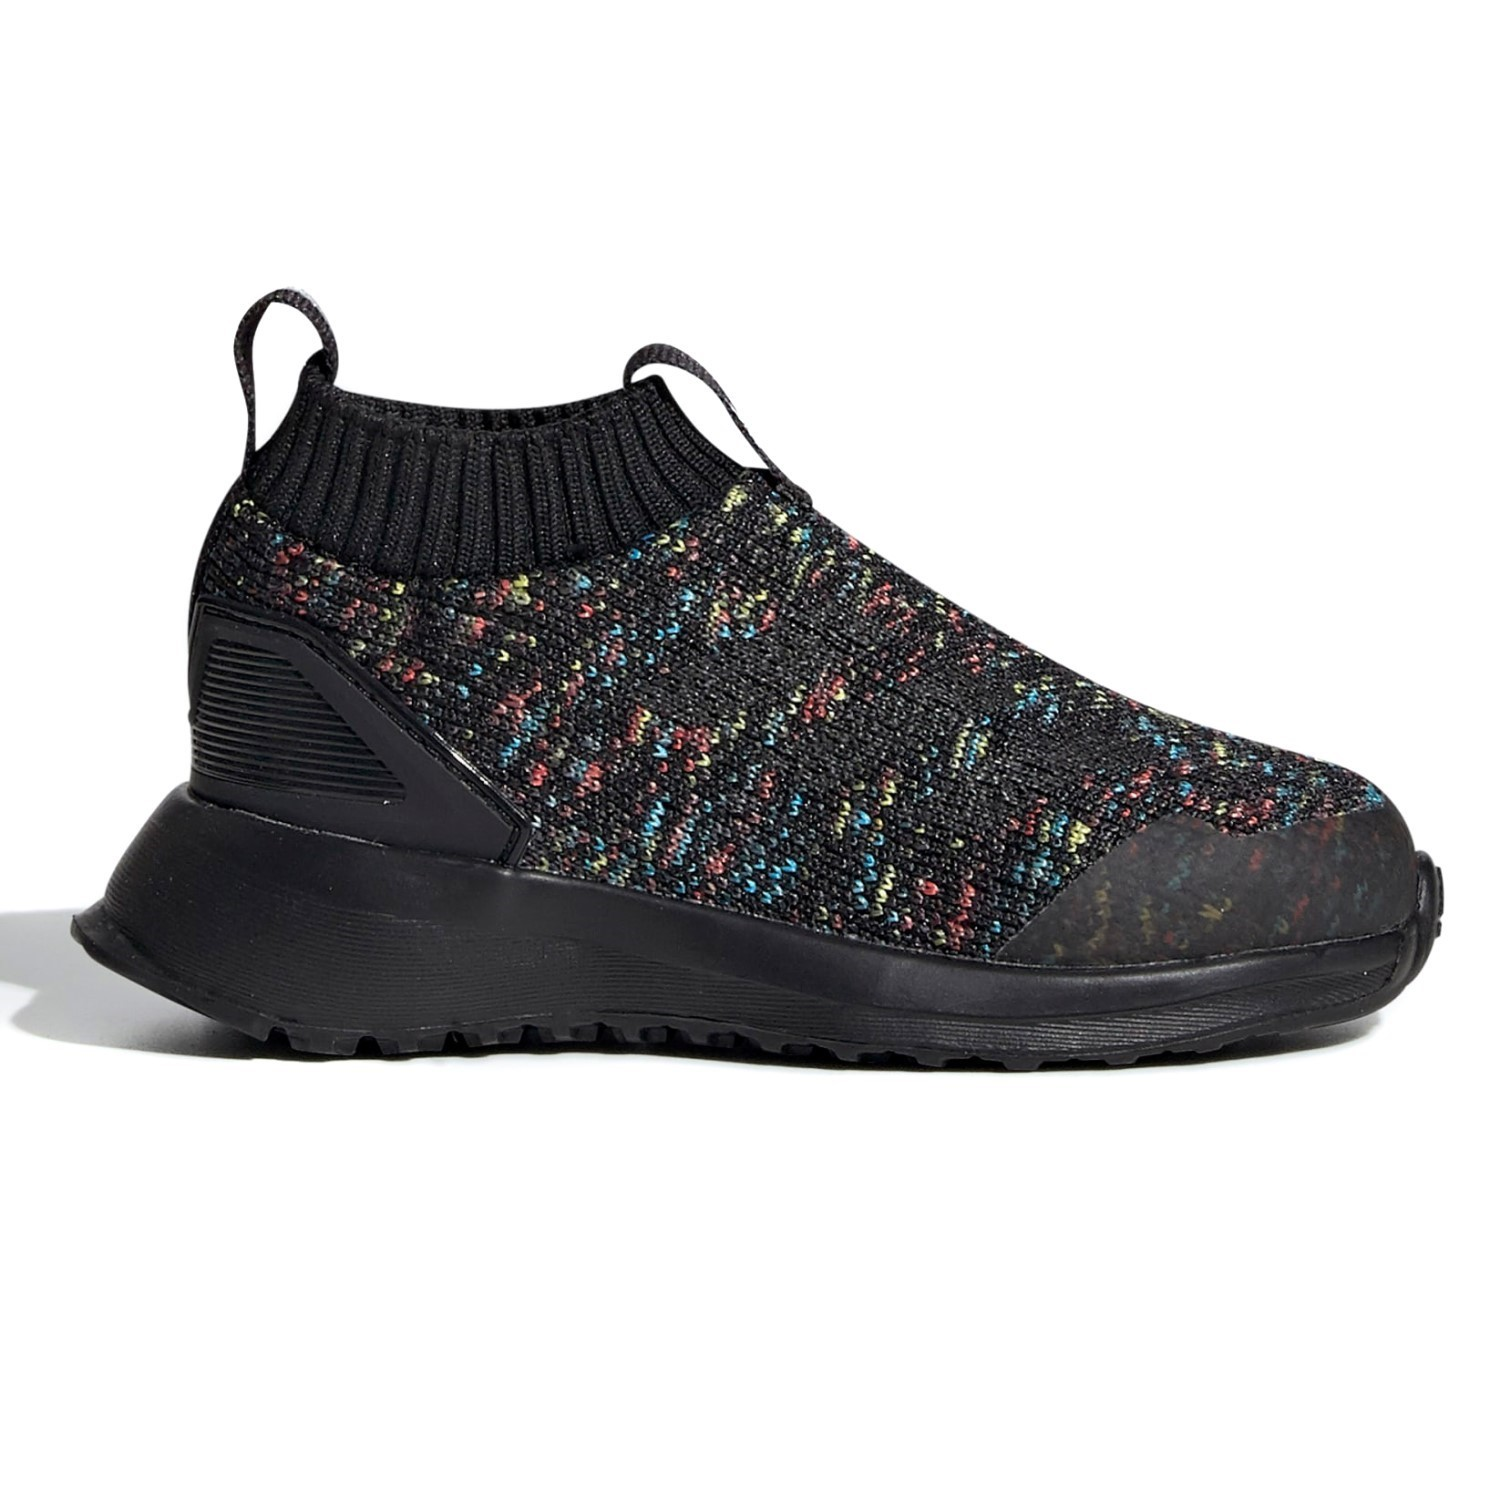 separation shoes 2fc78 b3a75 Adidas RapidaRun Laceless - Toddler Boys Running Shoes - Black Multi